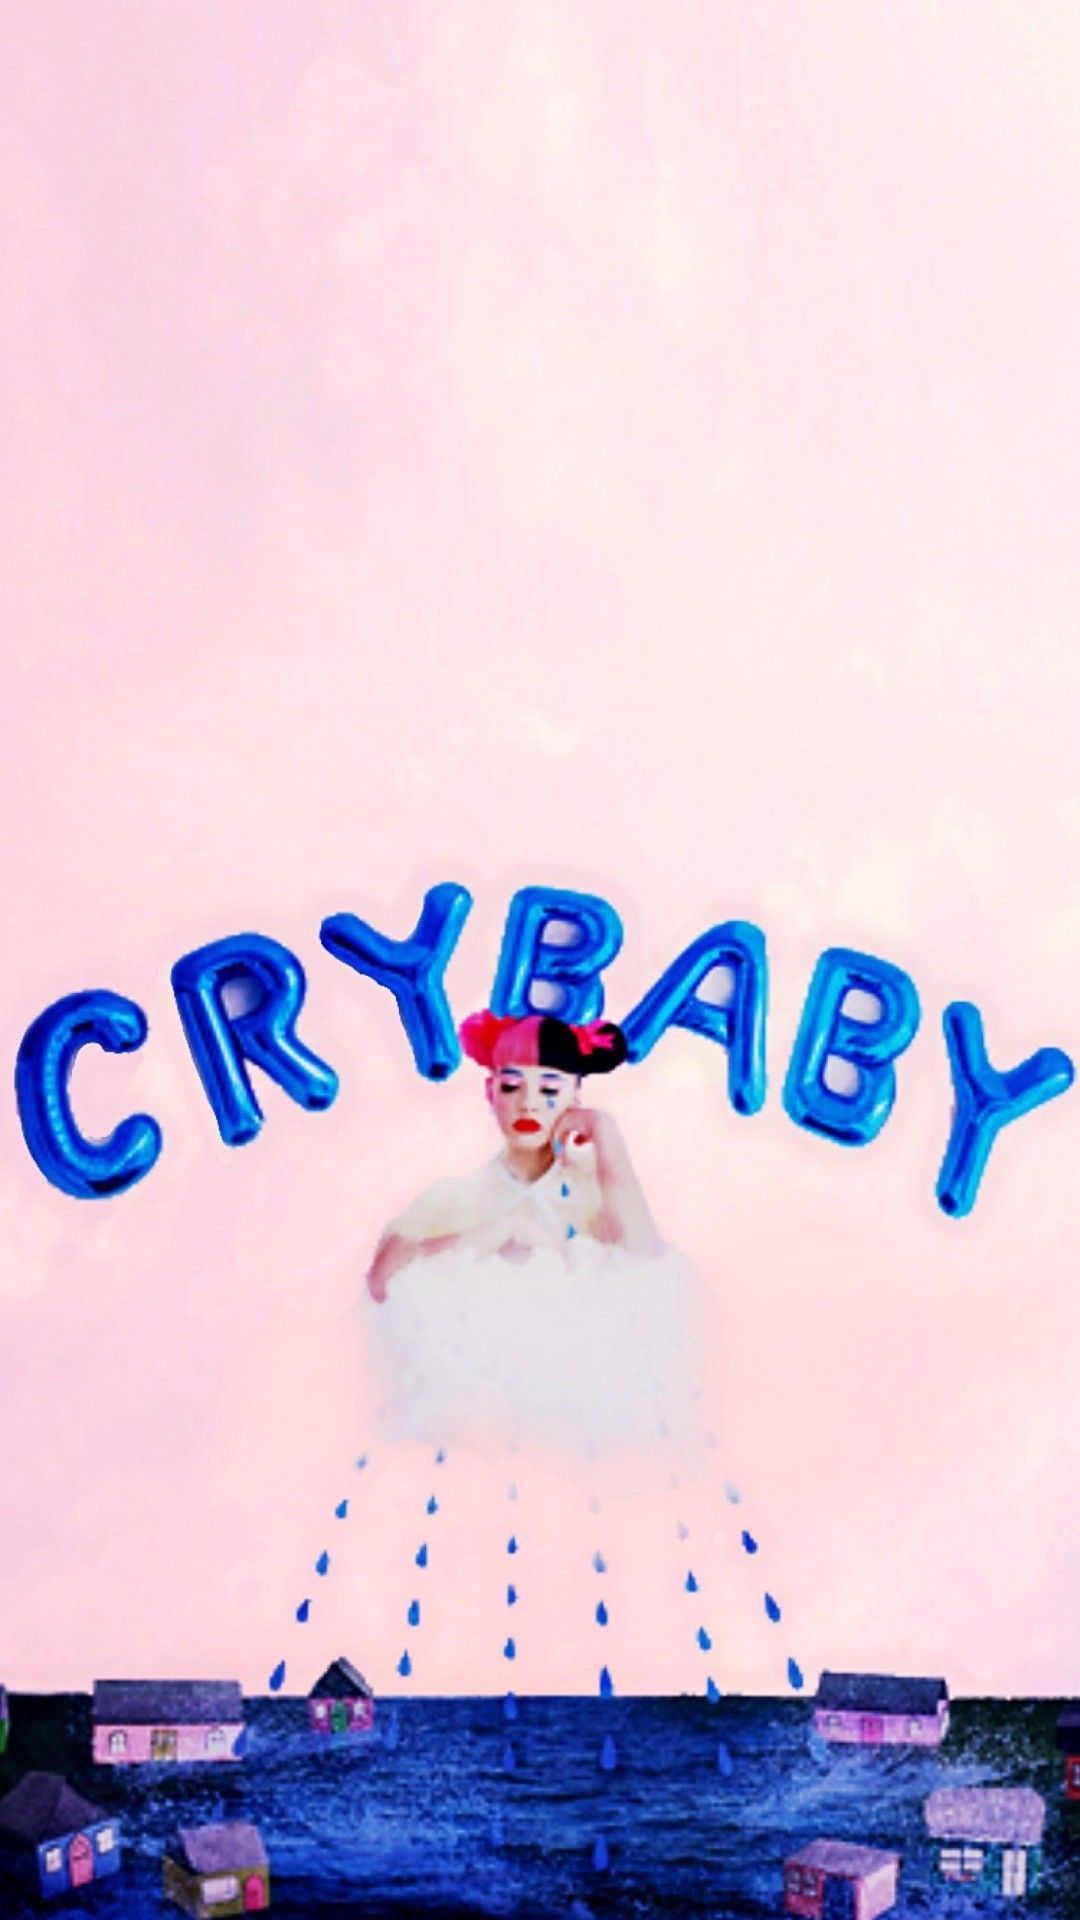 Melanie Martinez Cry Baby - Android, iPhone, Desktop HD Backgrounds / Wallpapers (1080p, 4k) (337541) - Girls